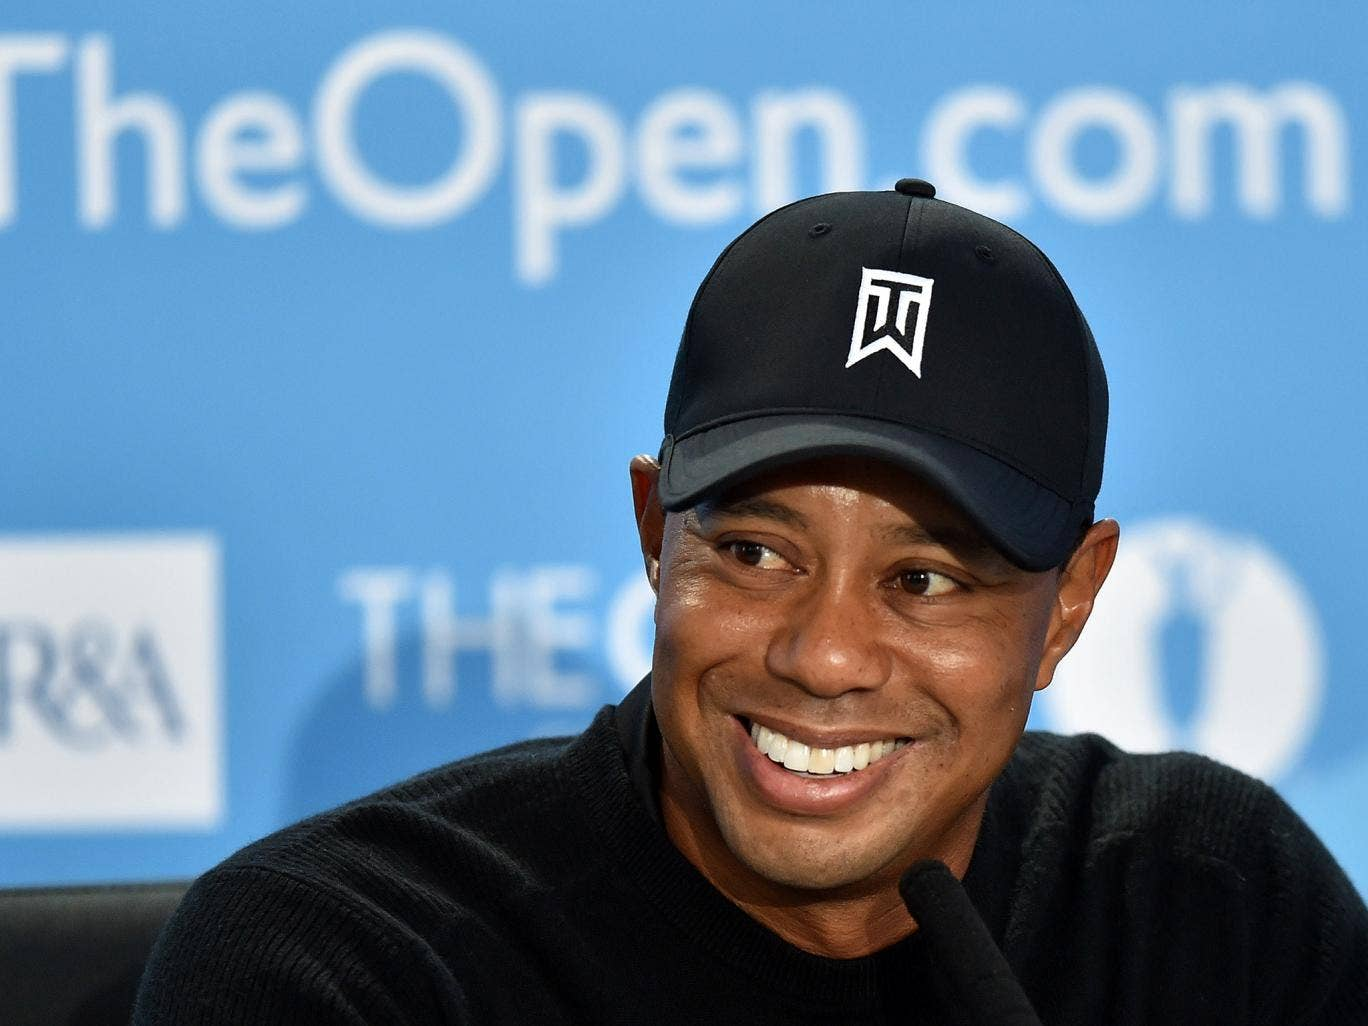 Tiger Woods speaks to the media prior to the start of The Open